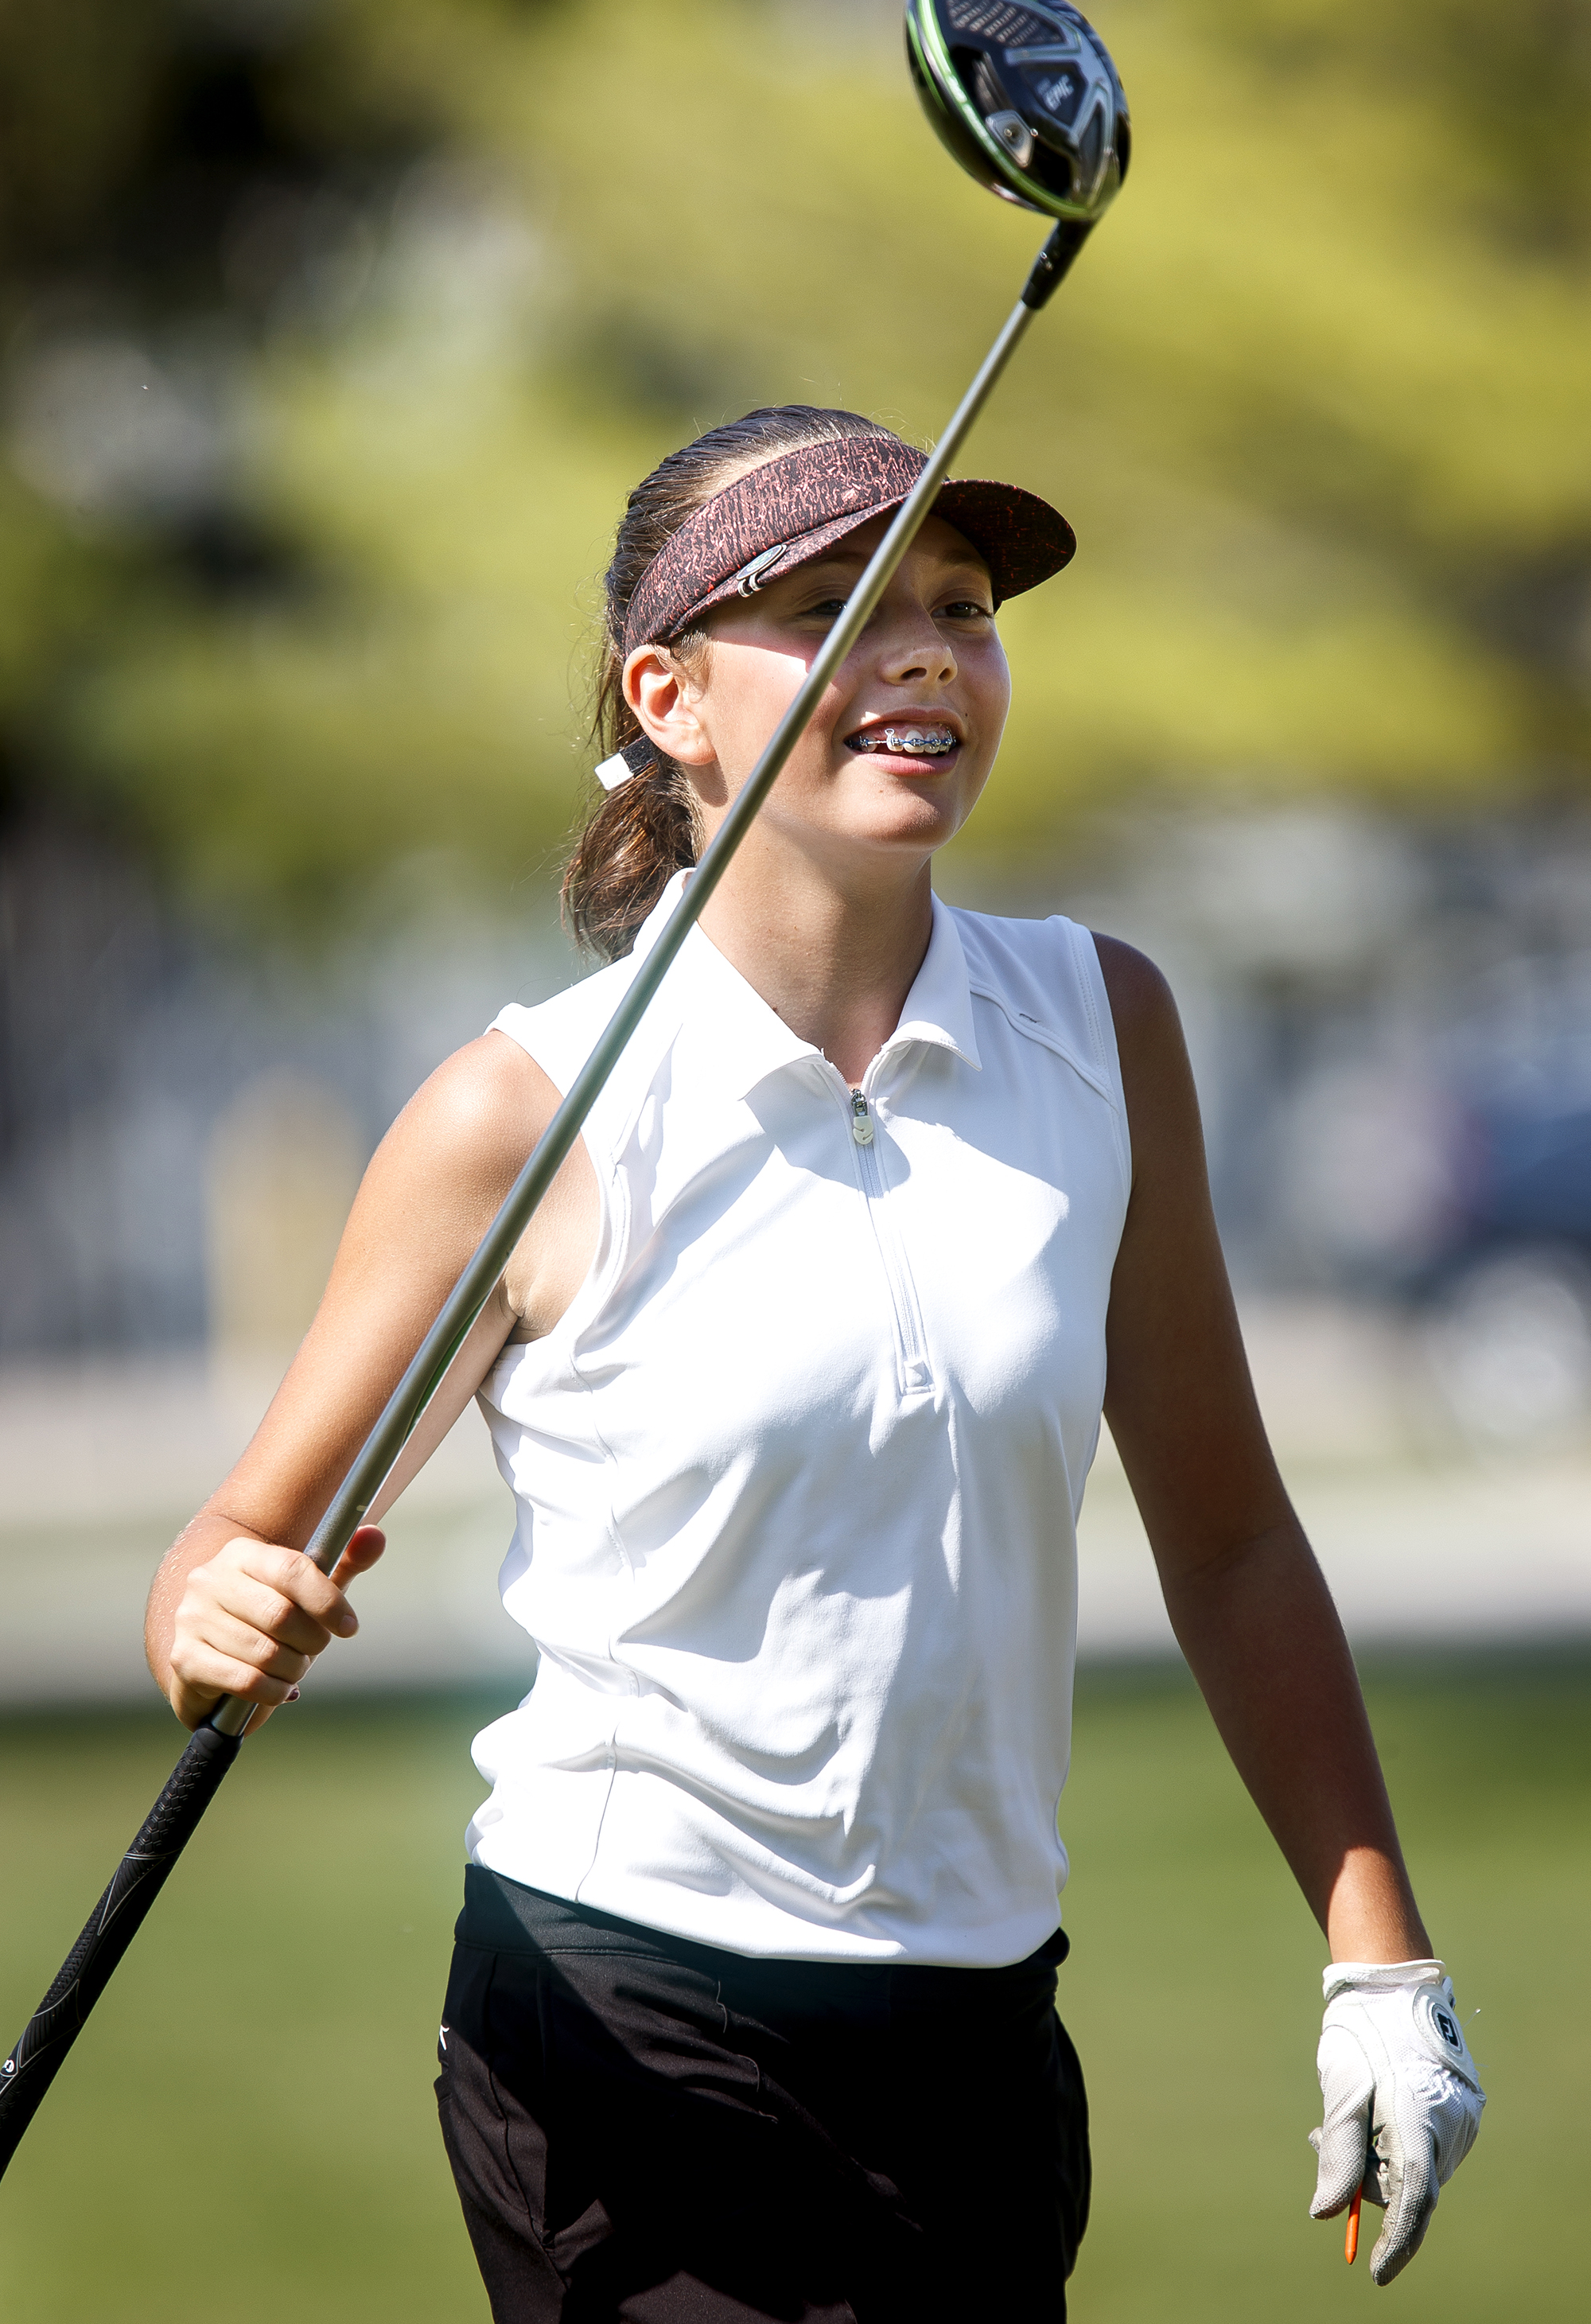 Cantrall's Catalina Easley defeated ChathamÕs Ellissa Warren 4 up 3 to win the girls 11-13 championship Thursday, July 12, 2018 in the Drysdale Junior Golf Tournament Golf at Bergen Golf Course Course in Springfield, Ill. [Rich Saal/The State Journal-Register]